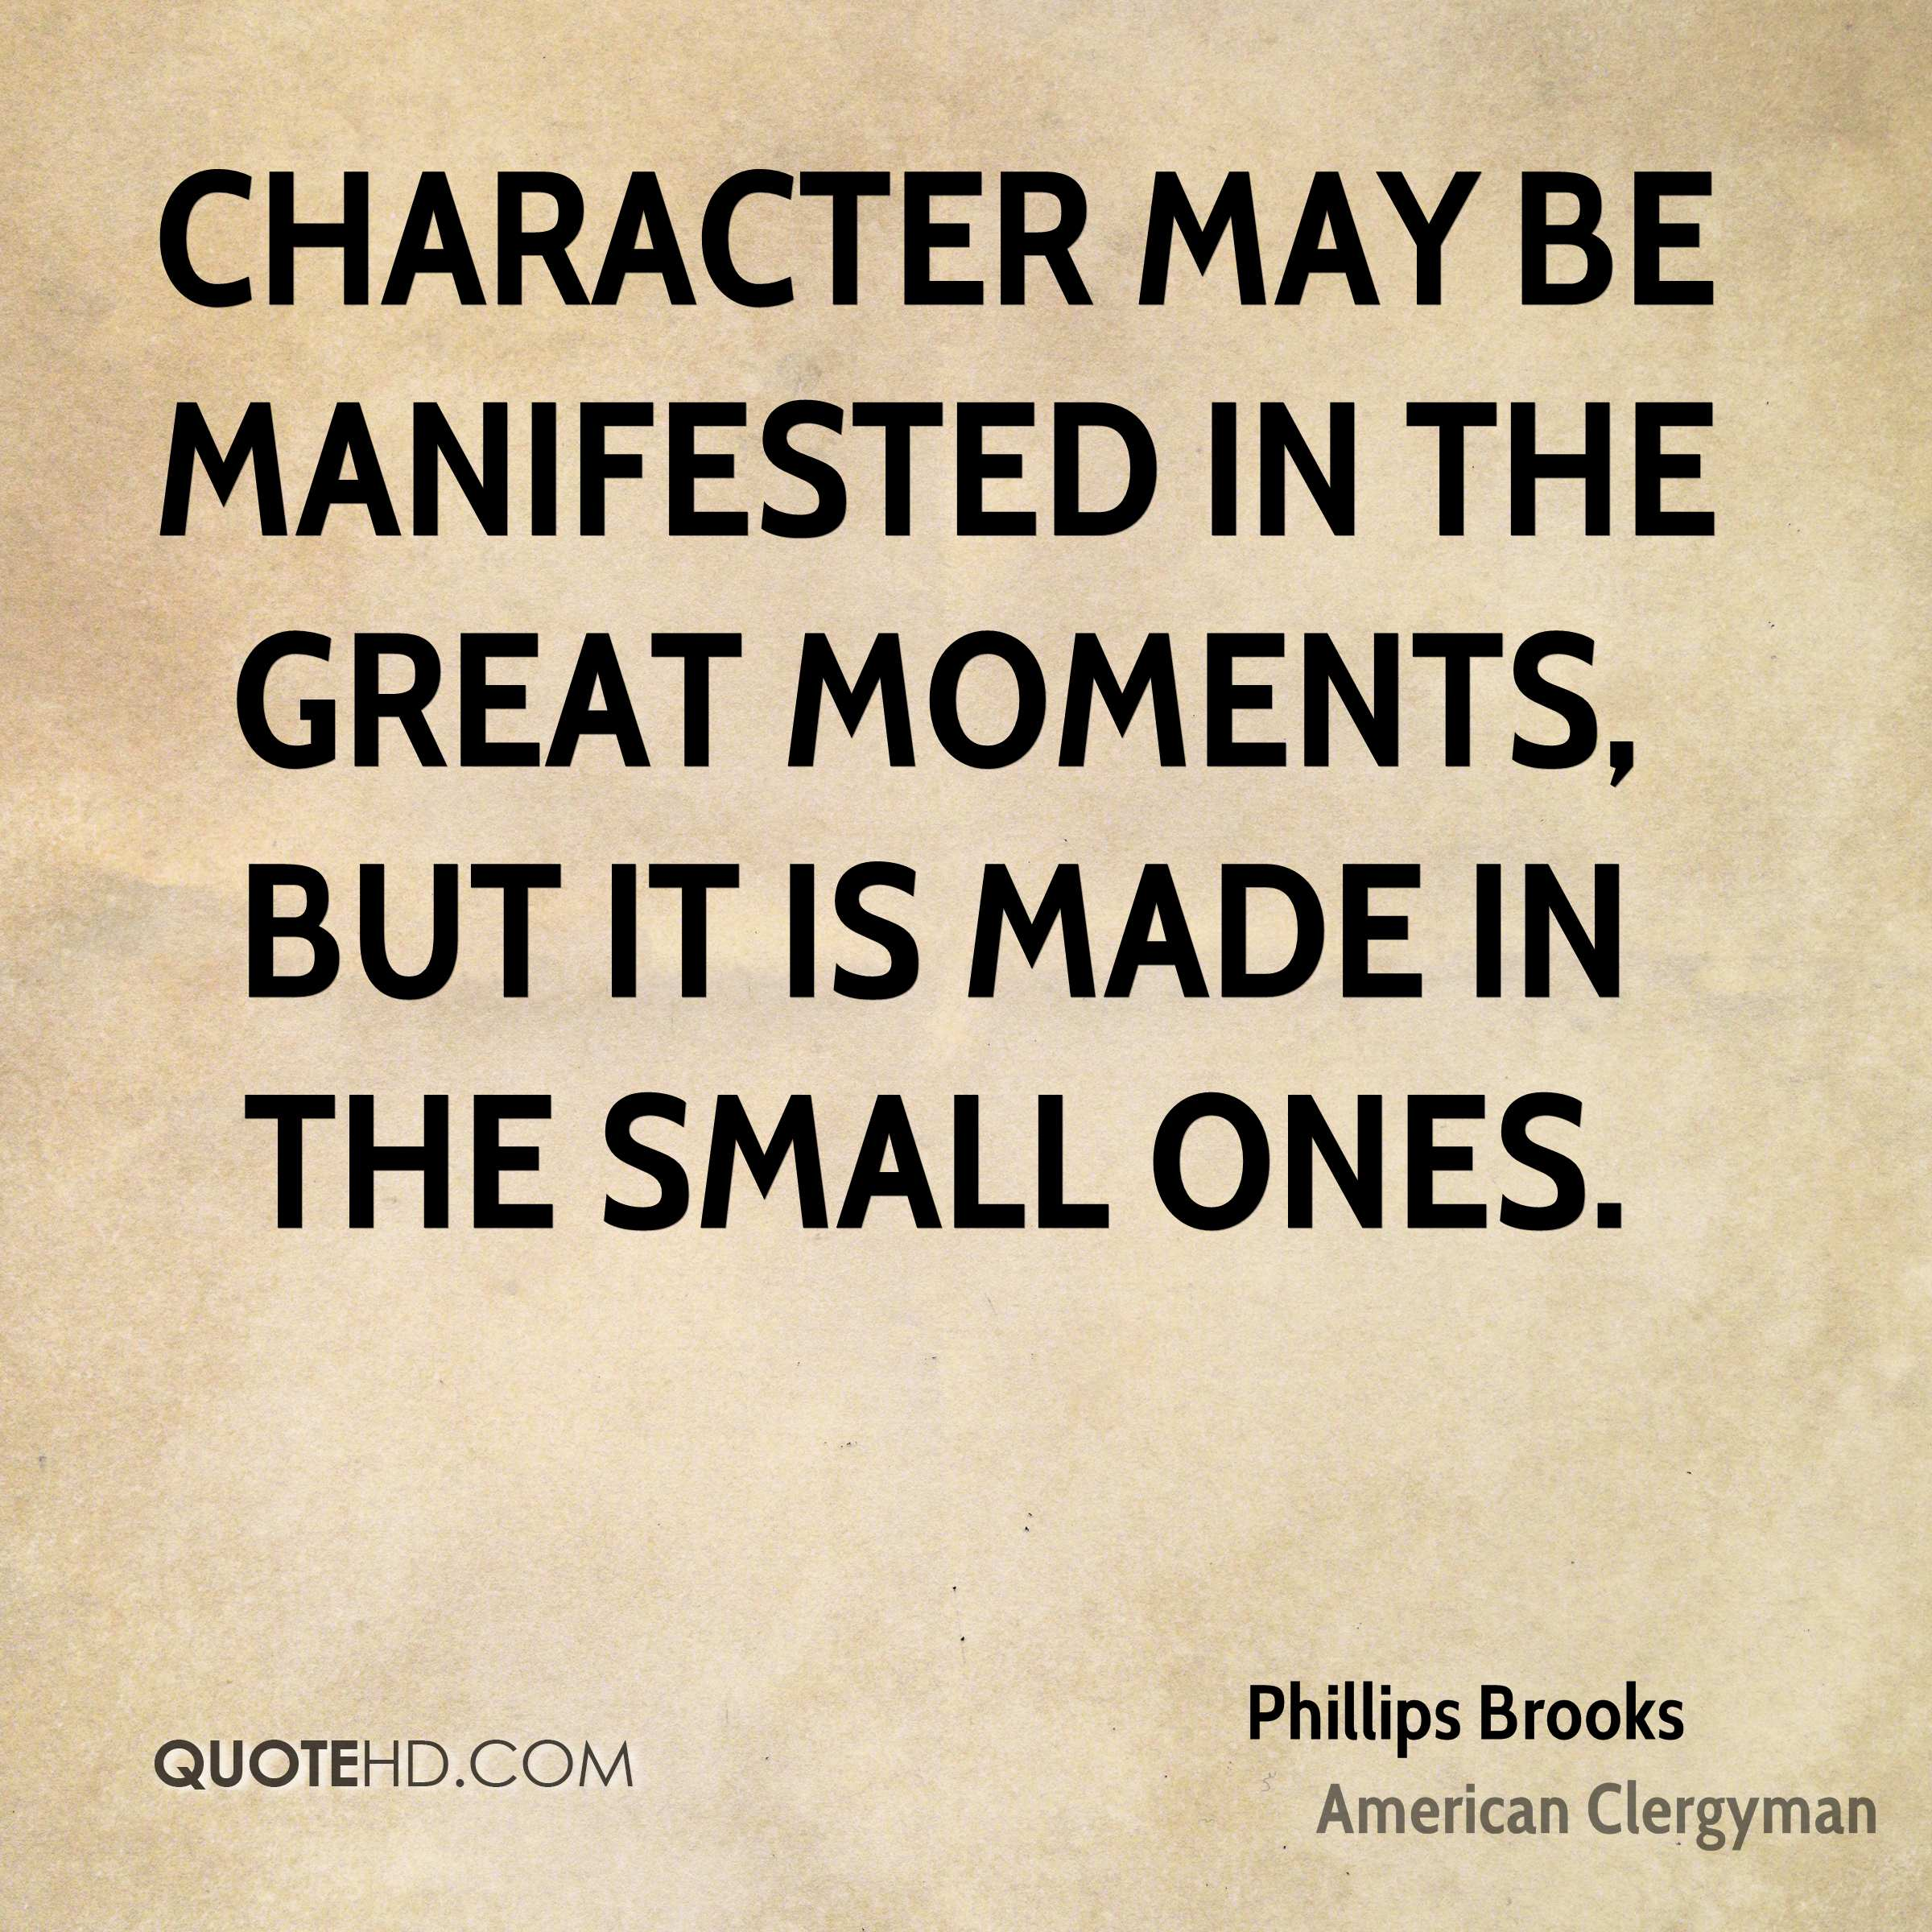 Marvelous Character May Be Manifested In The Great Moments, But It Is Made In The  Small